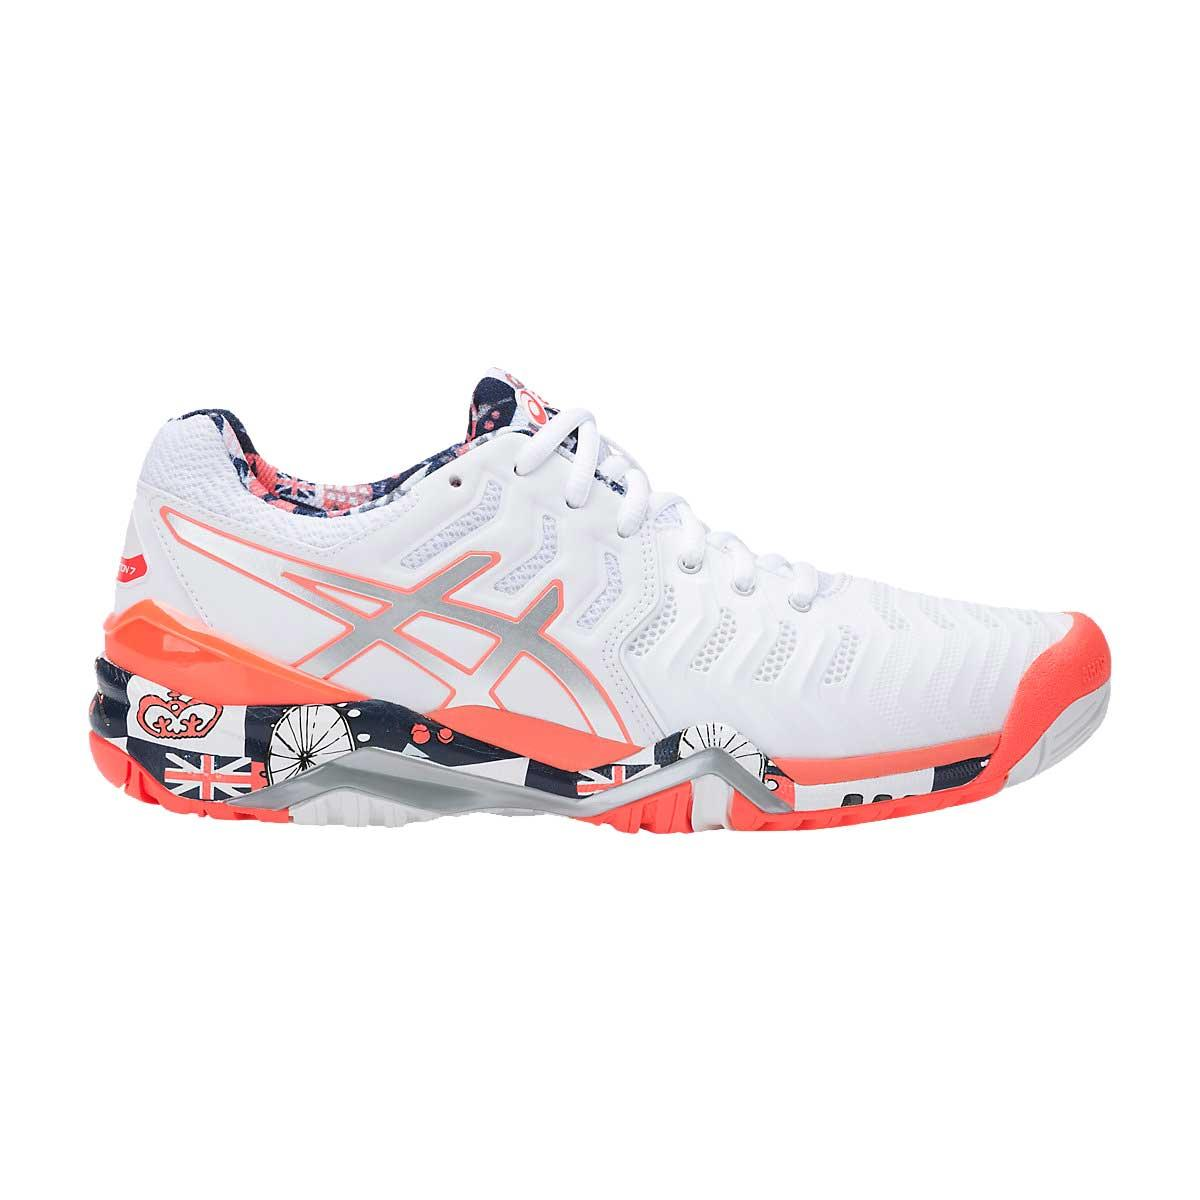 8f51ded5fee Tênis Asics Gel Resolution 7 Feminino